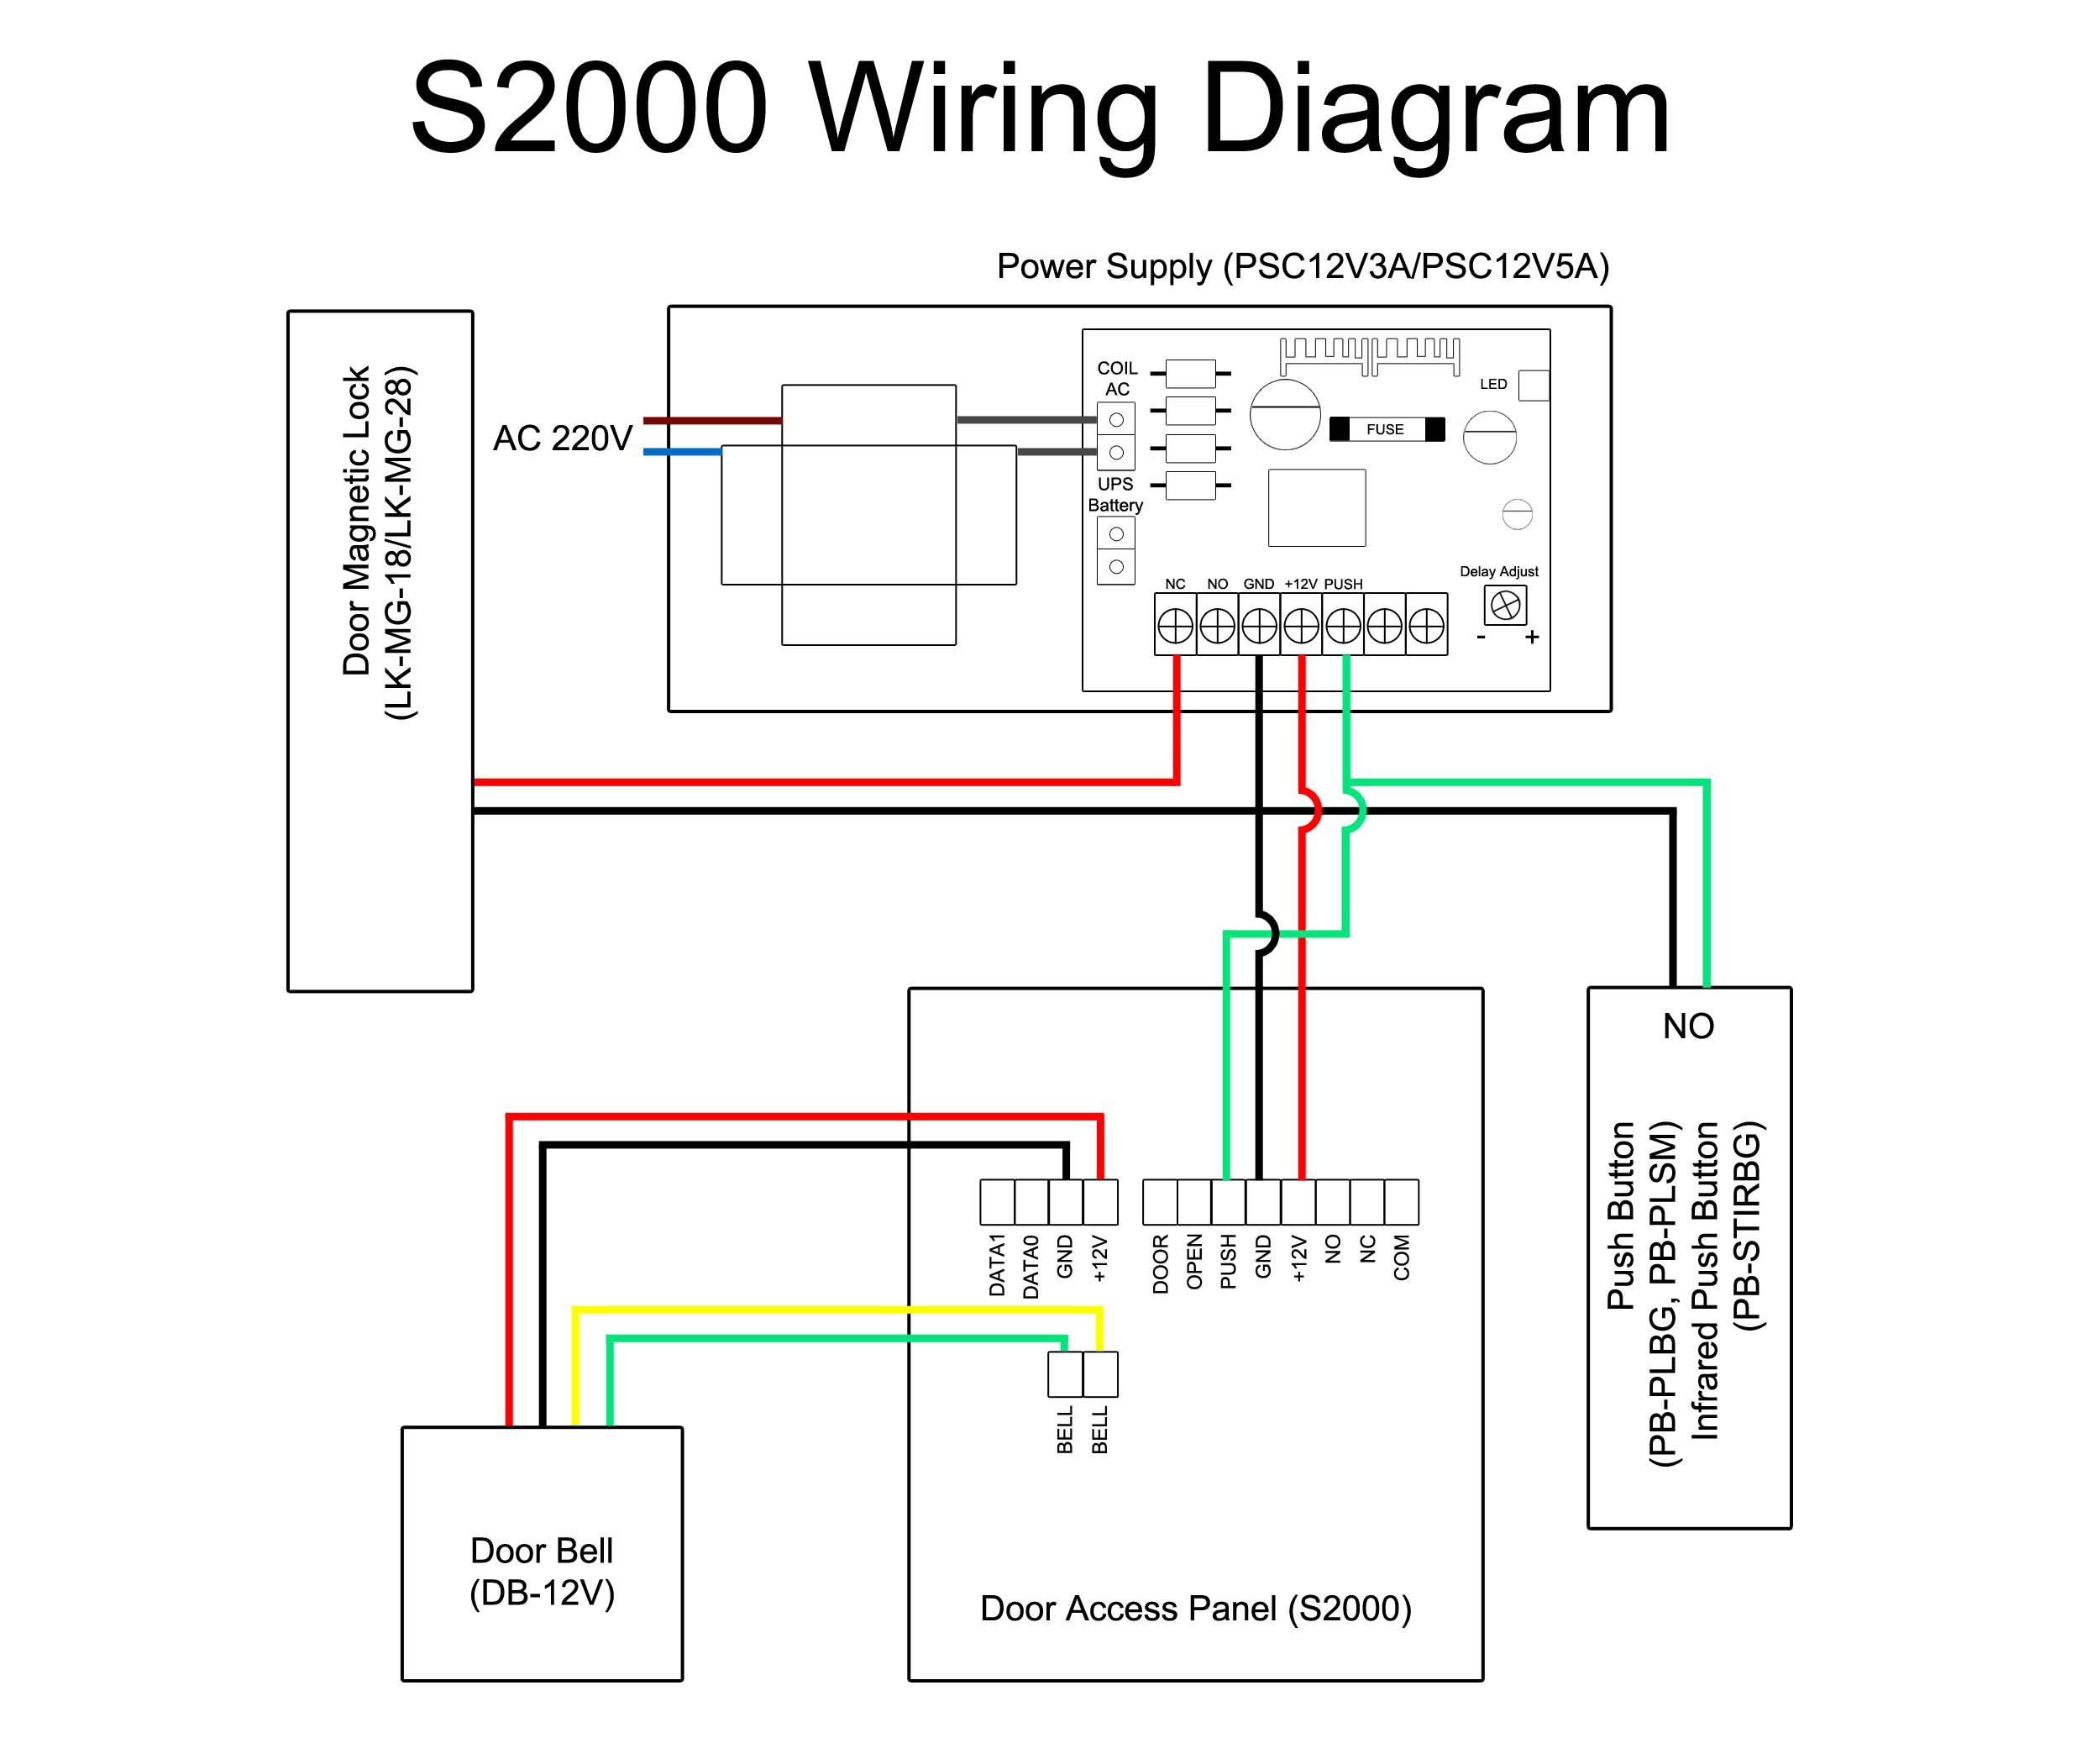 harbor freight security camera wiring diagram Collection-Harbor Freight Security Camera Wiring Diagram Best 7-t